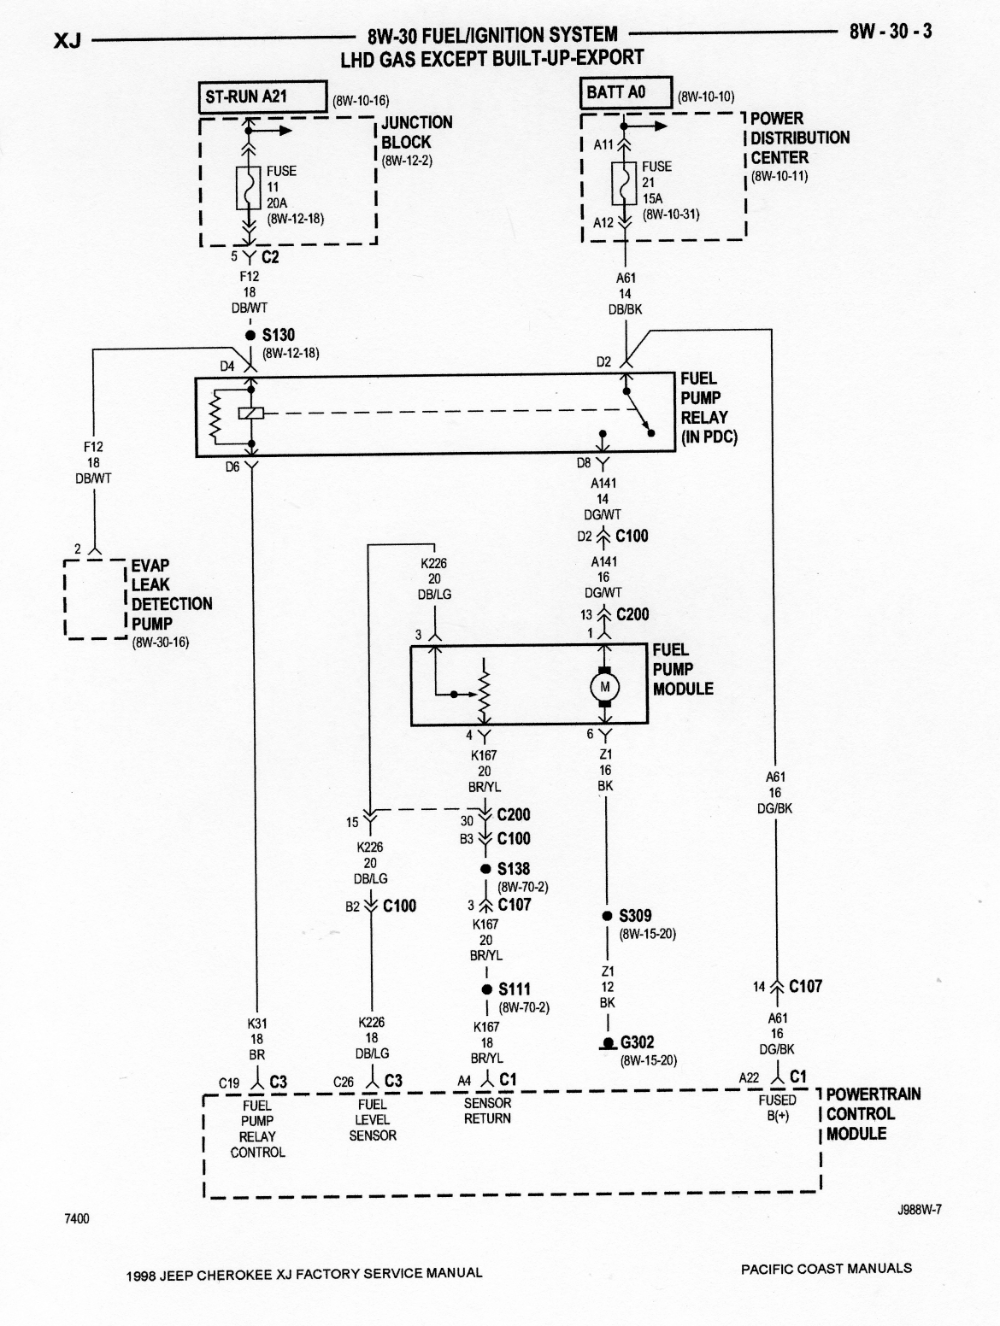 1998 Jeep Cherokee Fuel Pump Wiring Diagram Google Search 2011 Jeep Grand Cherokee Jeep Grand Cherokee Cooling Fan